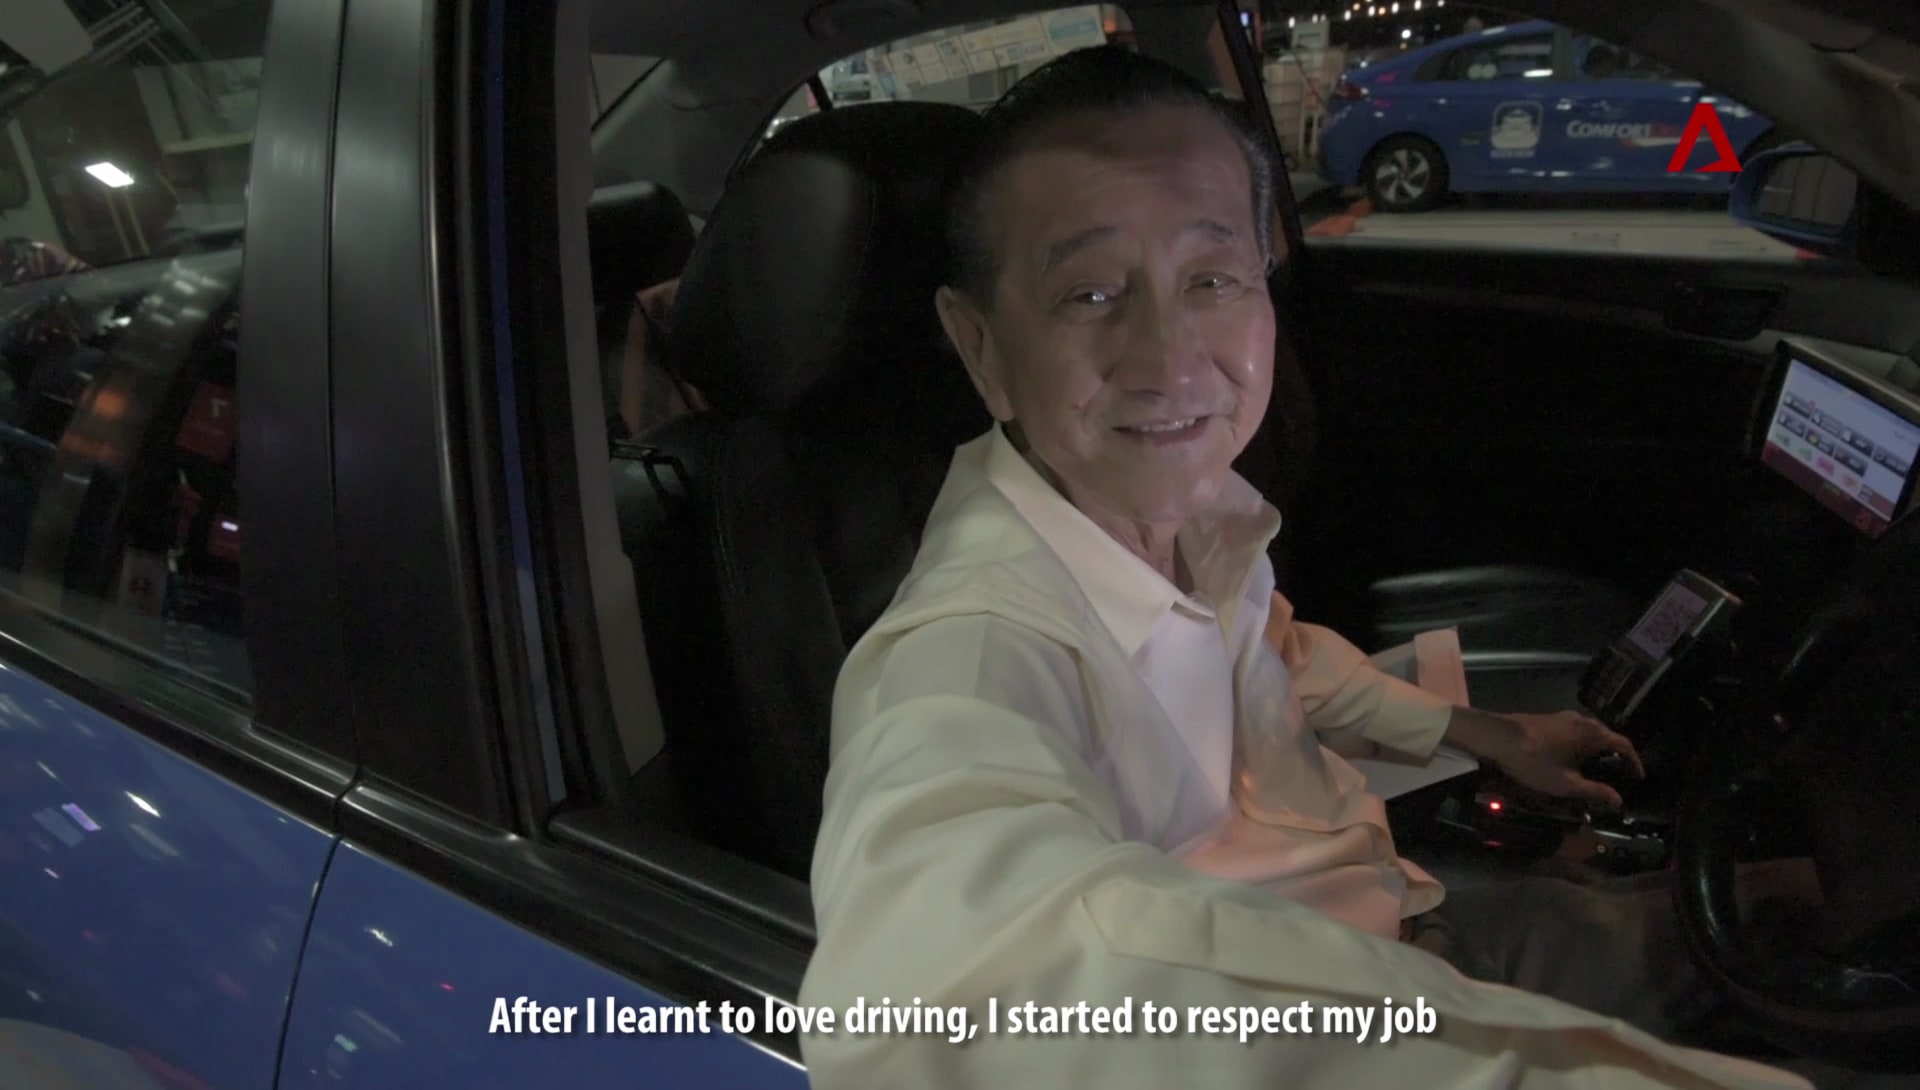 Last Day at Work: Taxi driver retires after 17 years